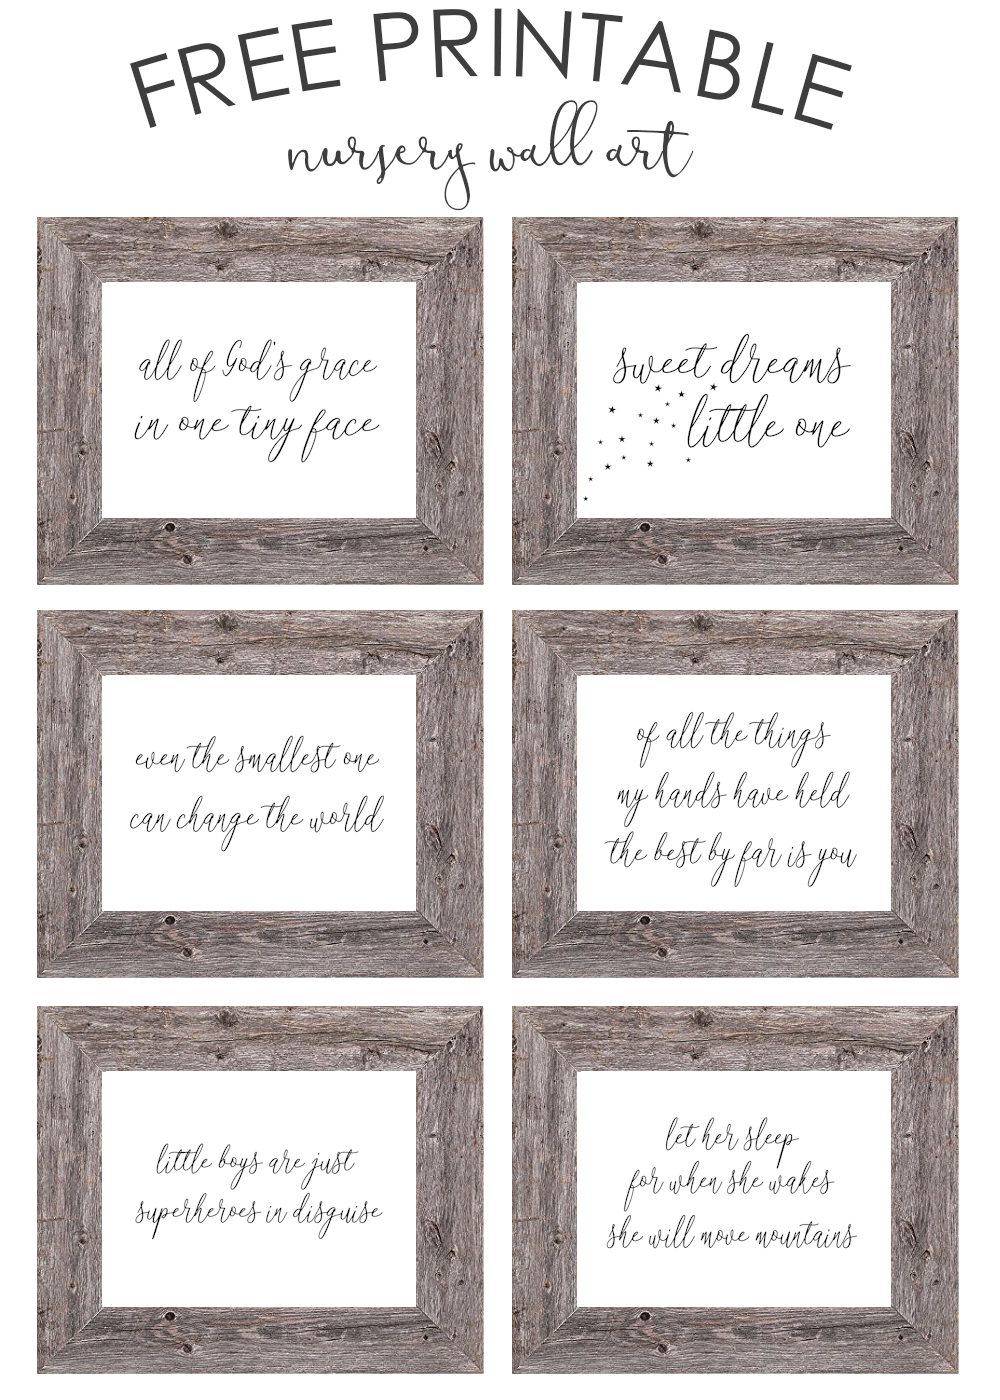 Free Printable Nursery Wall Art - The Girl Creative - Free Printable Wall Art For Bathroom